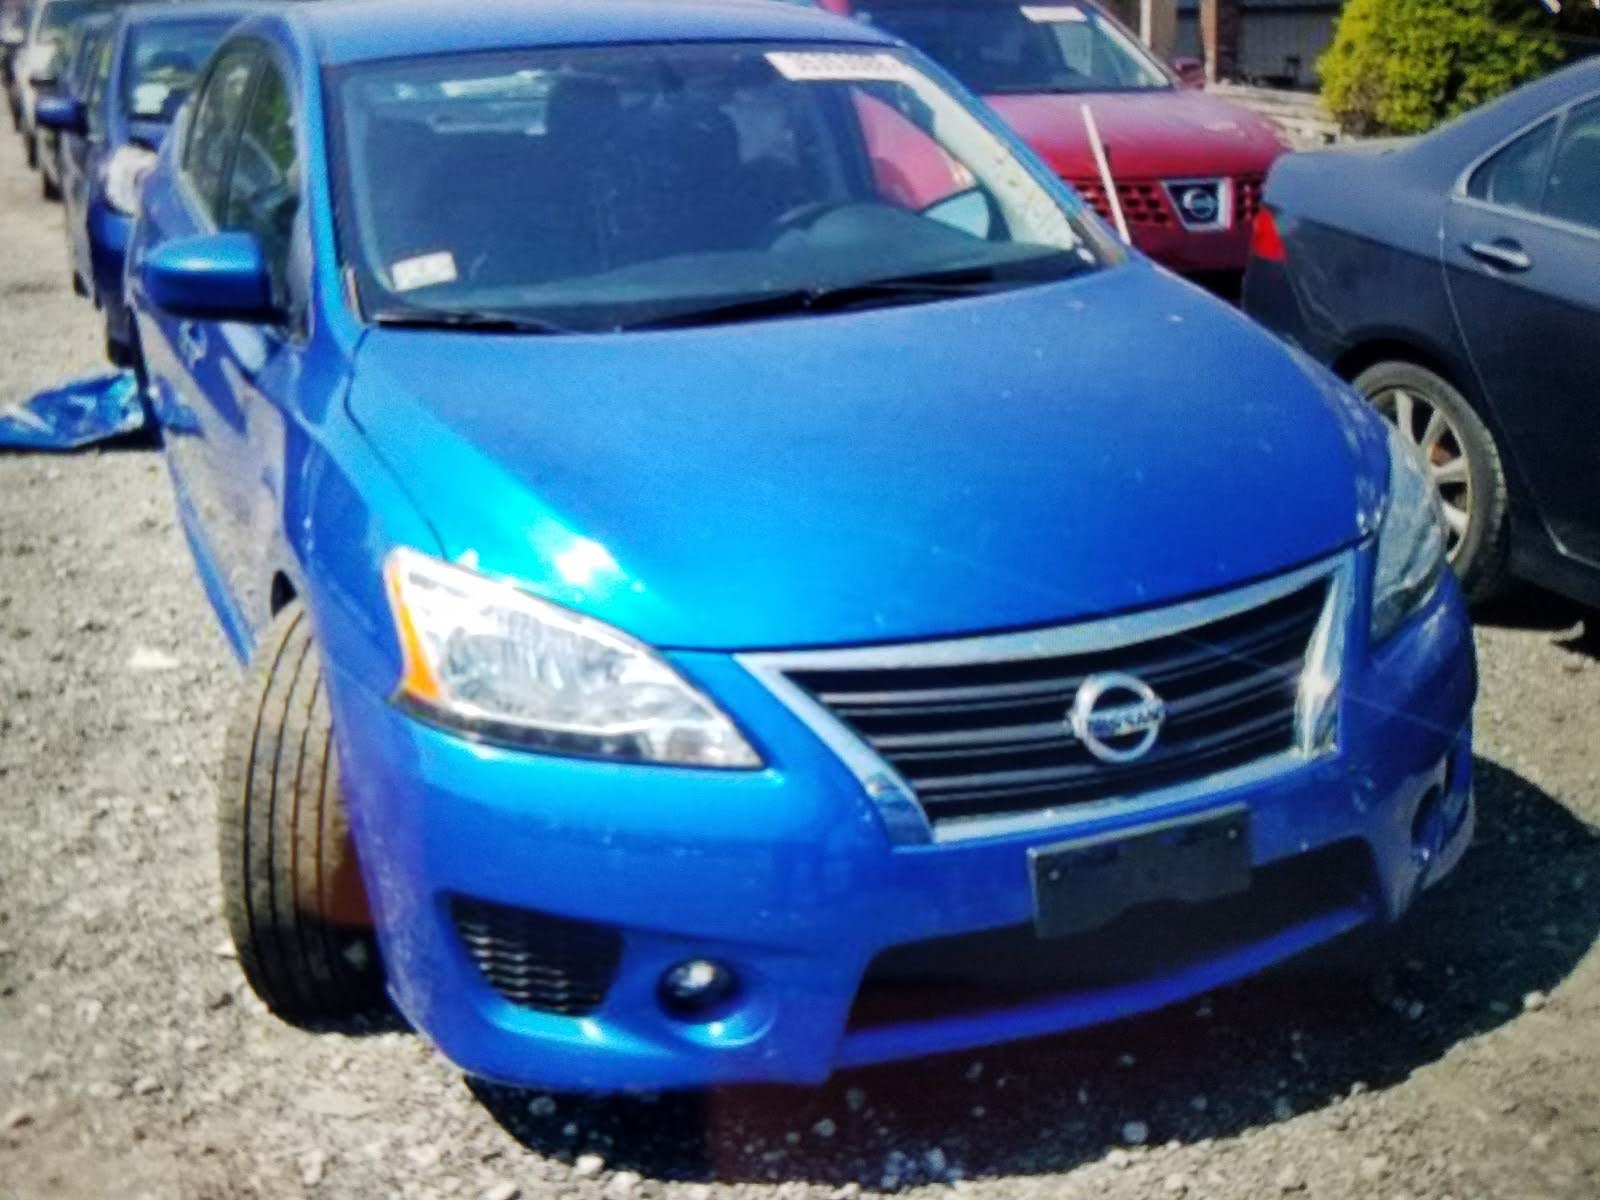 nissan sentra questions 2013 nissan sentra cvt transmission not being cover cargurus. Black Bedroom Furniture Sets. Home Design Ideas